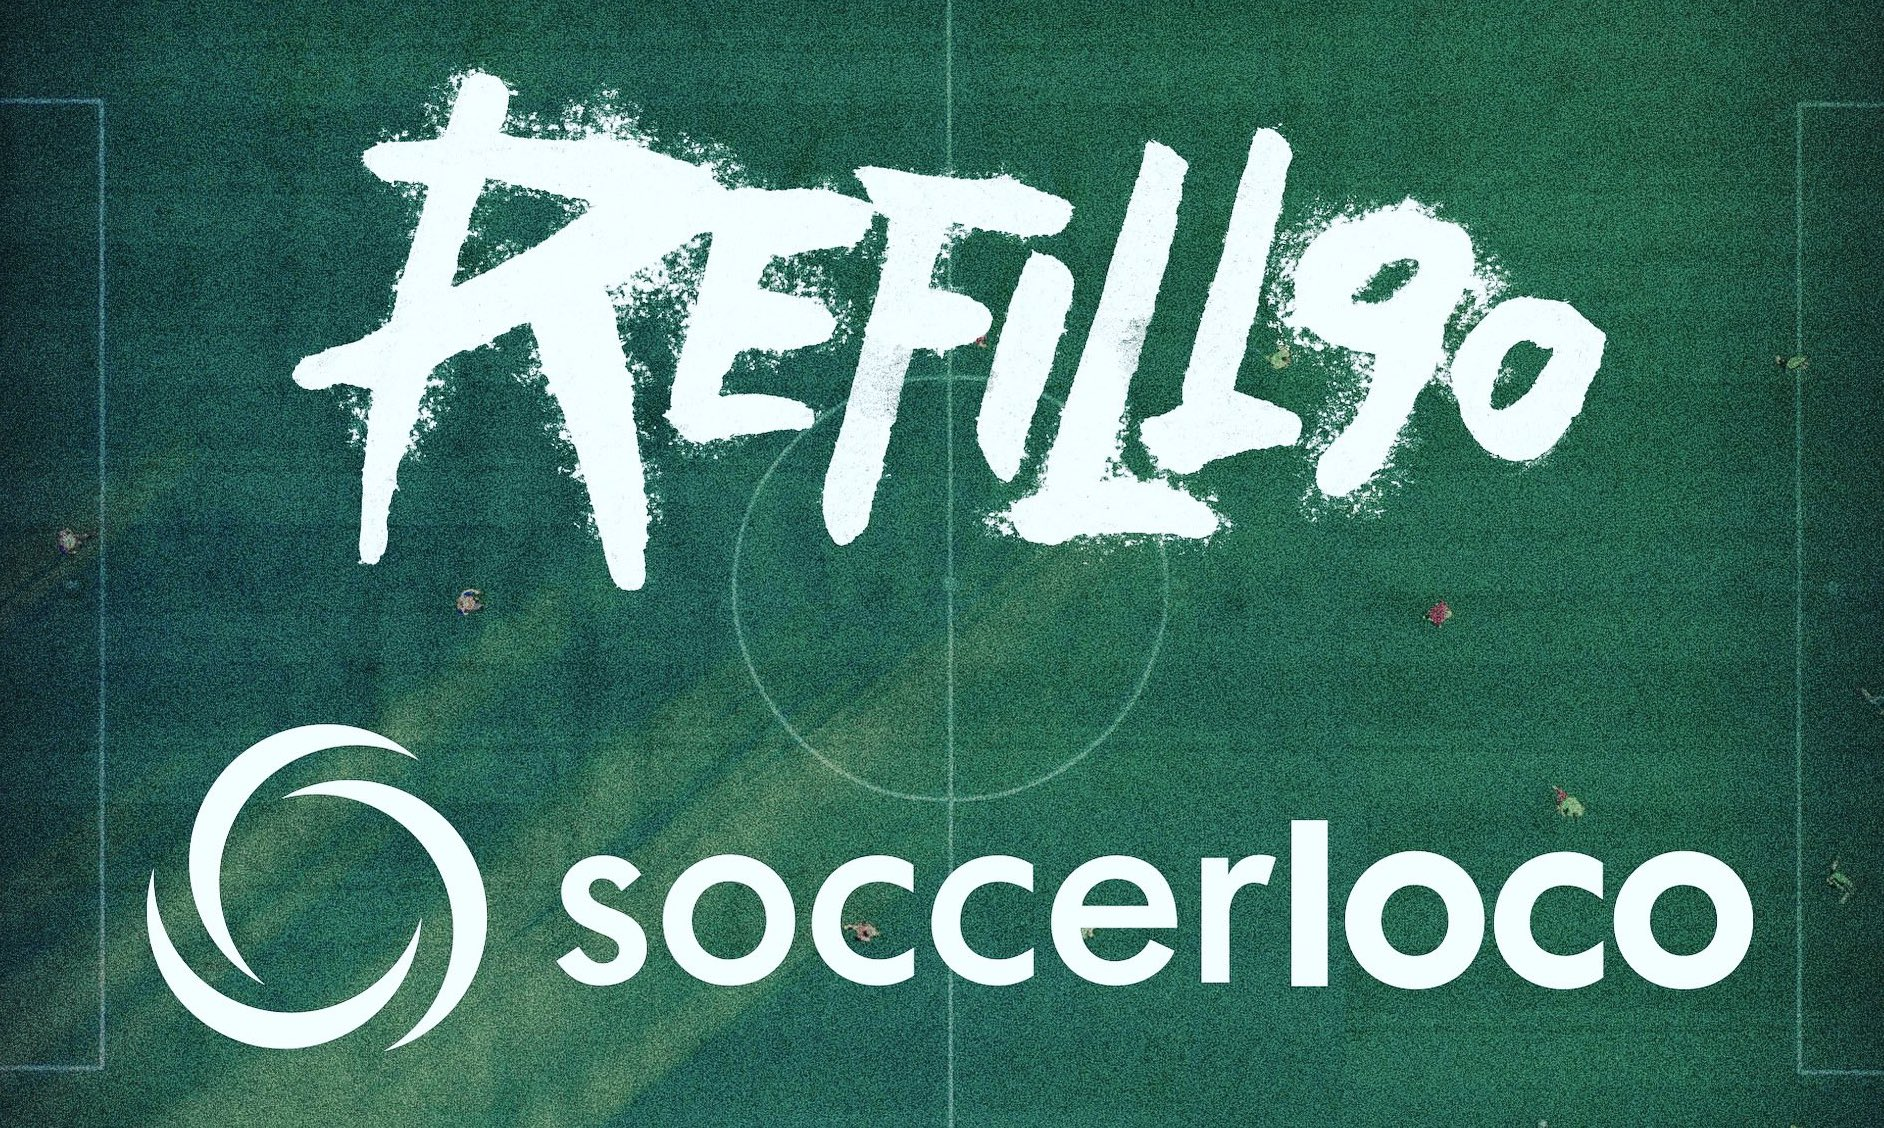 Soccerloco partners with Refill90 as Official Sustainability Partner to #ProtectThePitch